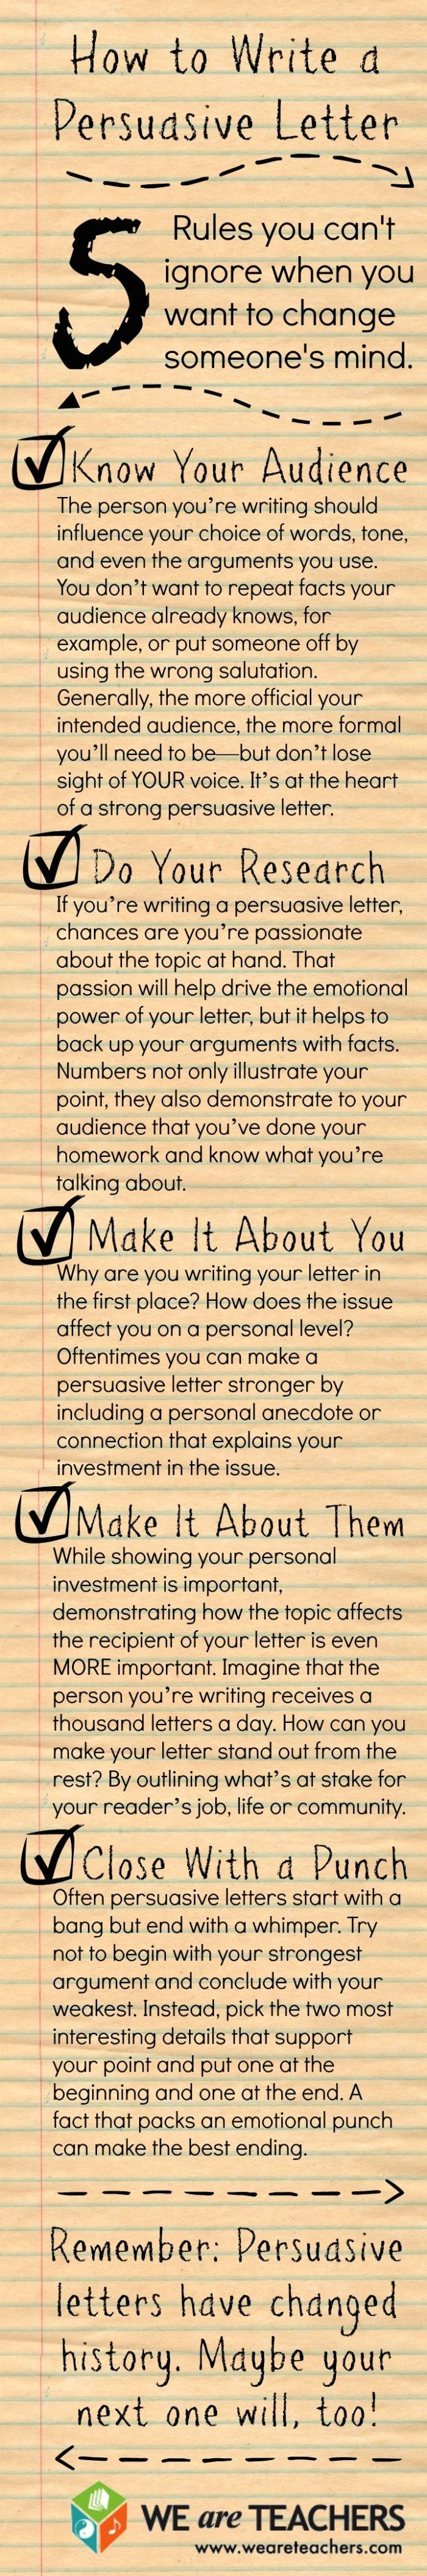 """""""Persuasive Writing: 5 Tips for Students"""" by WeareTeachers. This is a good resource for students tasked with persuasive writing."""